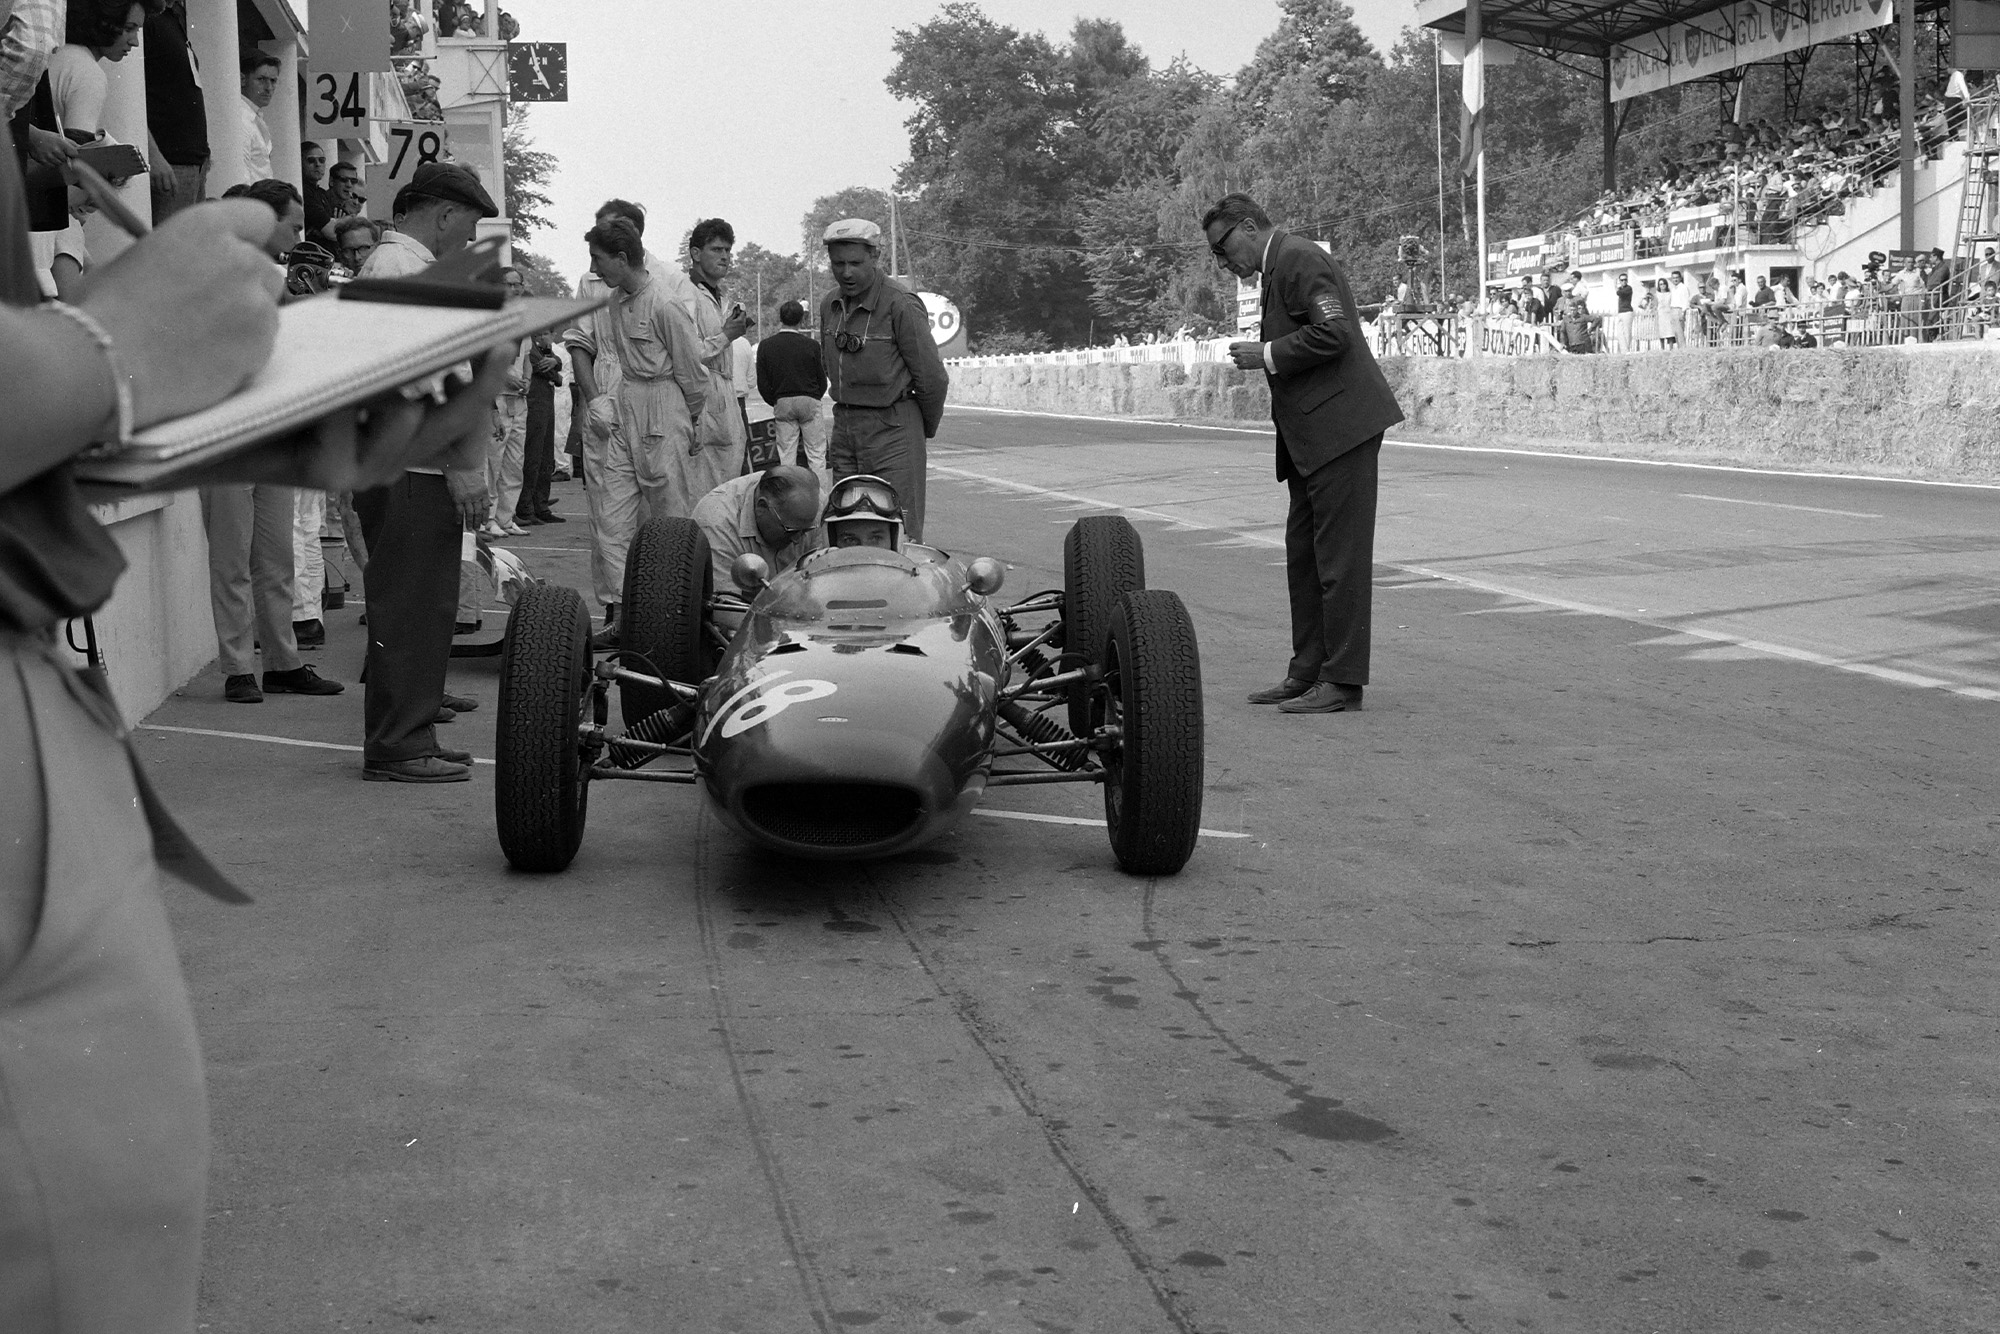 Surtees pays a visit to the pits